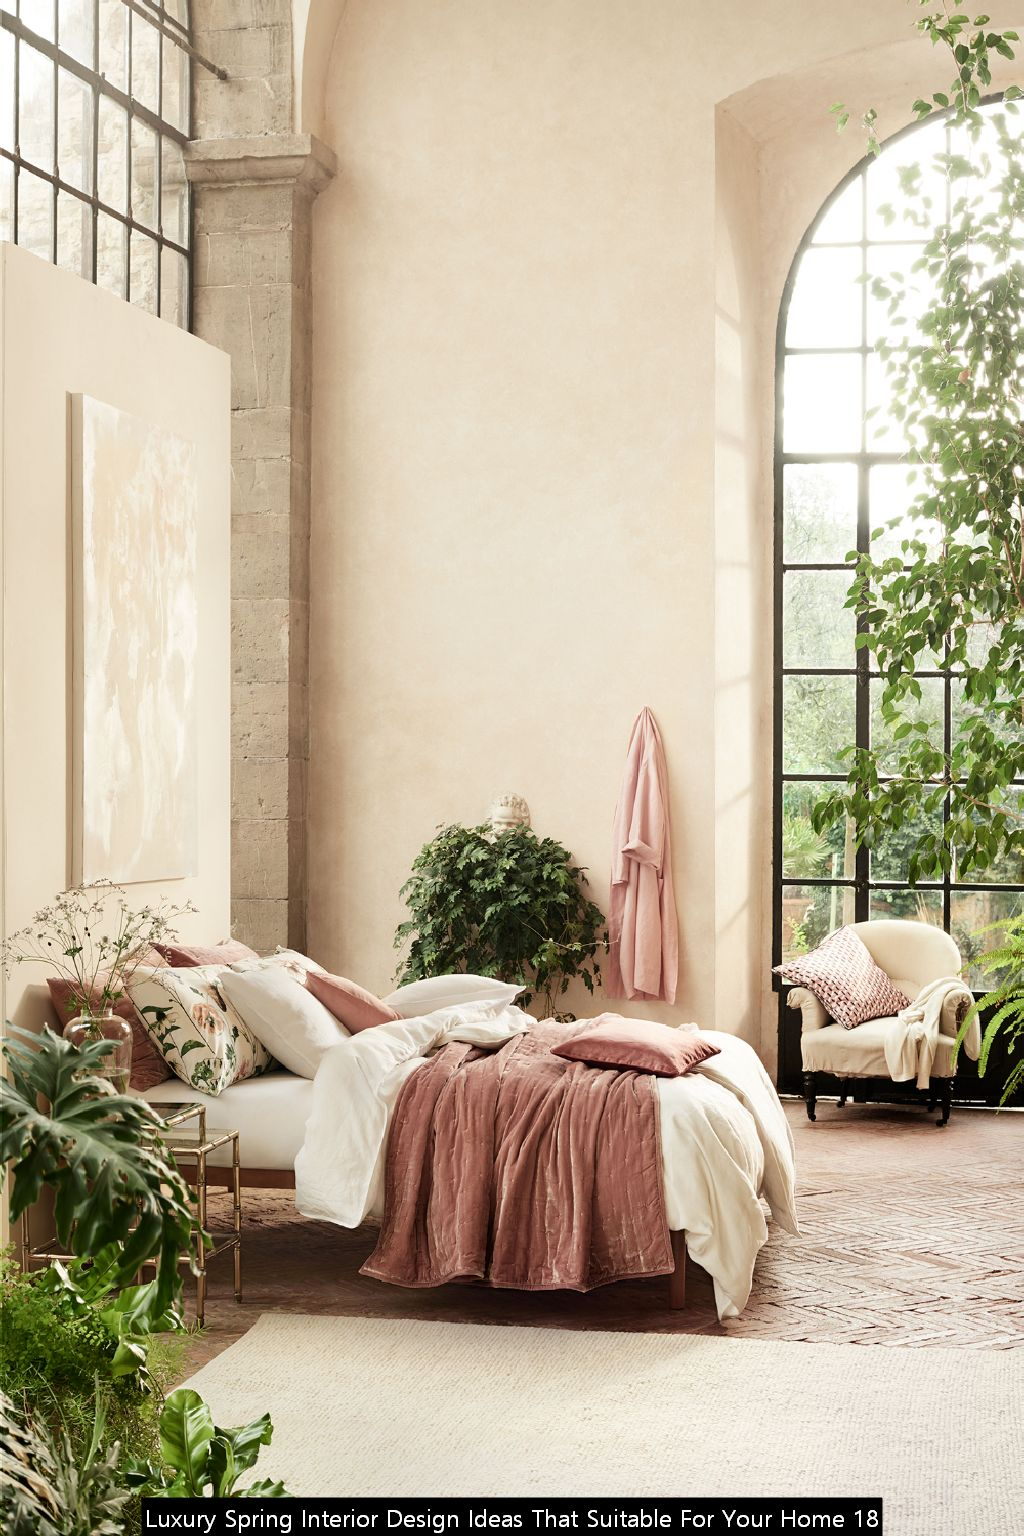 Luxury Spring Interior Design Ideas That Suitable For Your Home 18